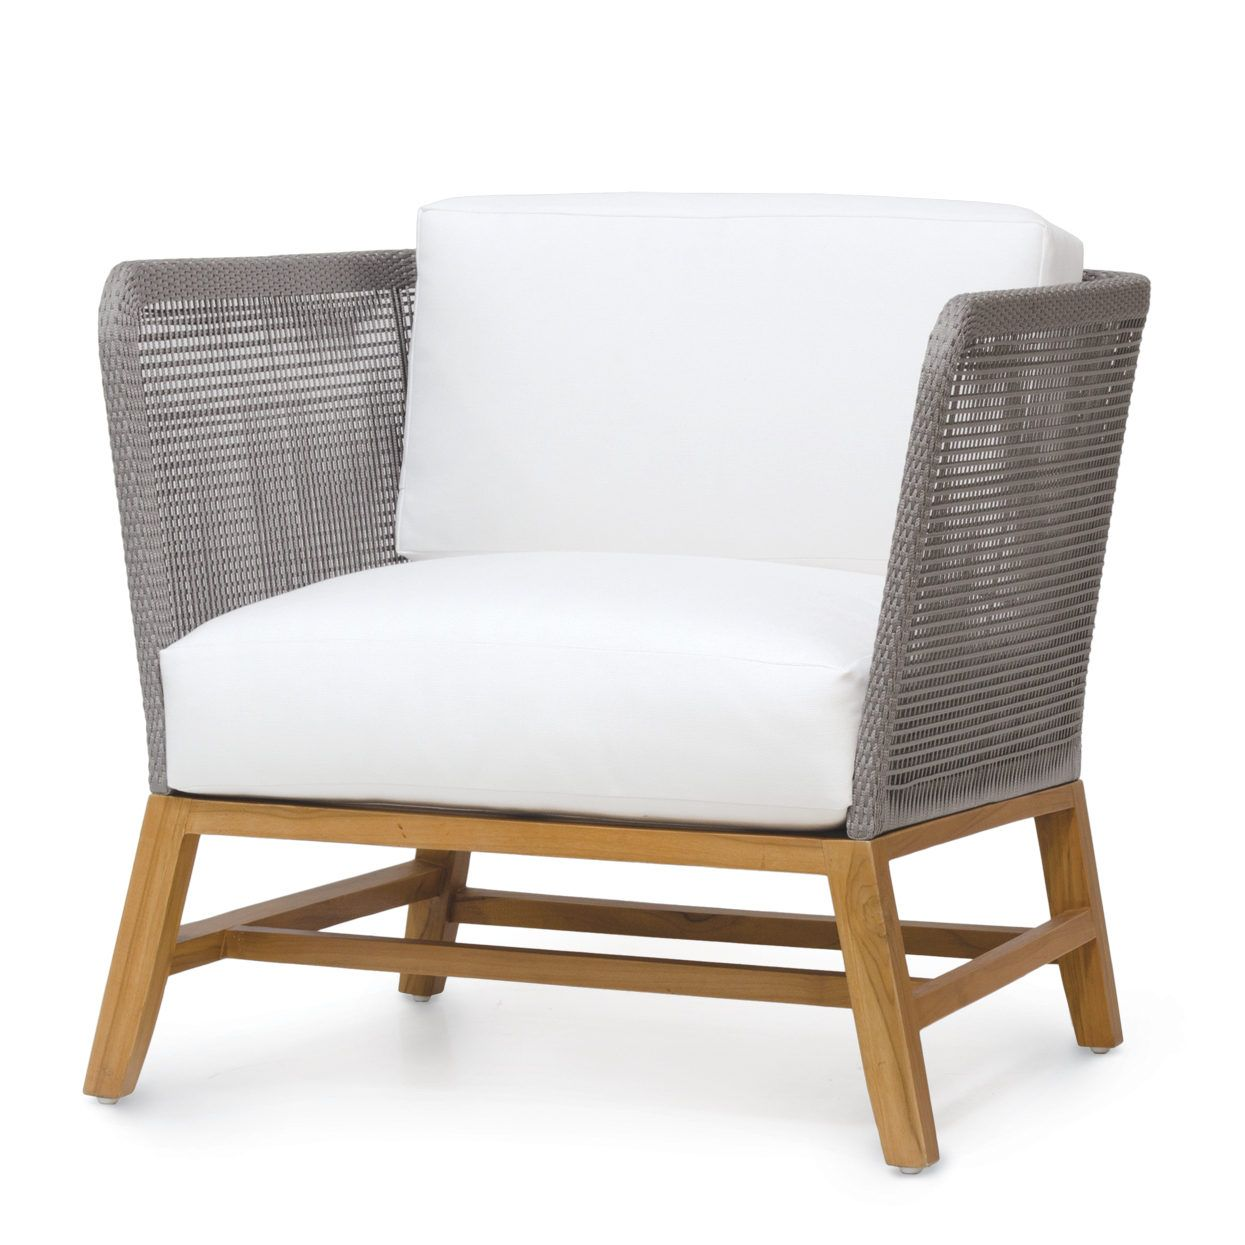 Palecek avila outdoor lounge chair